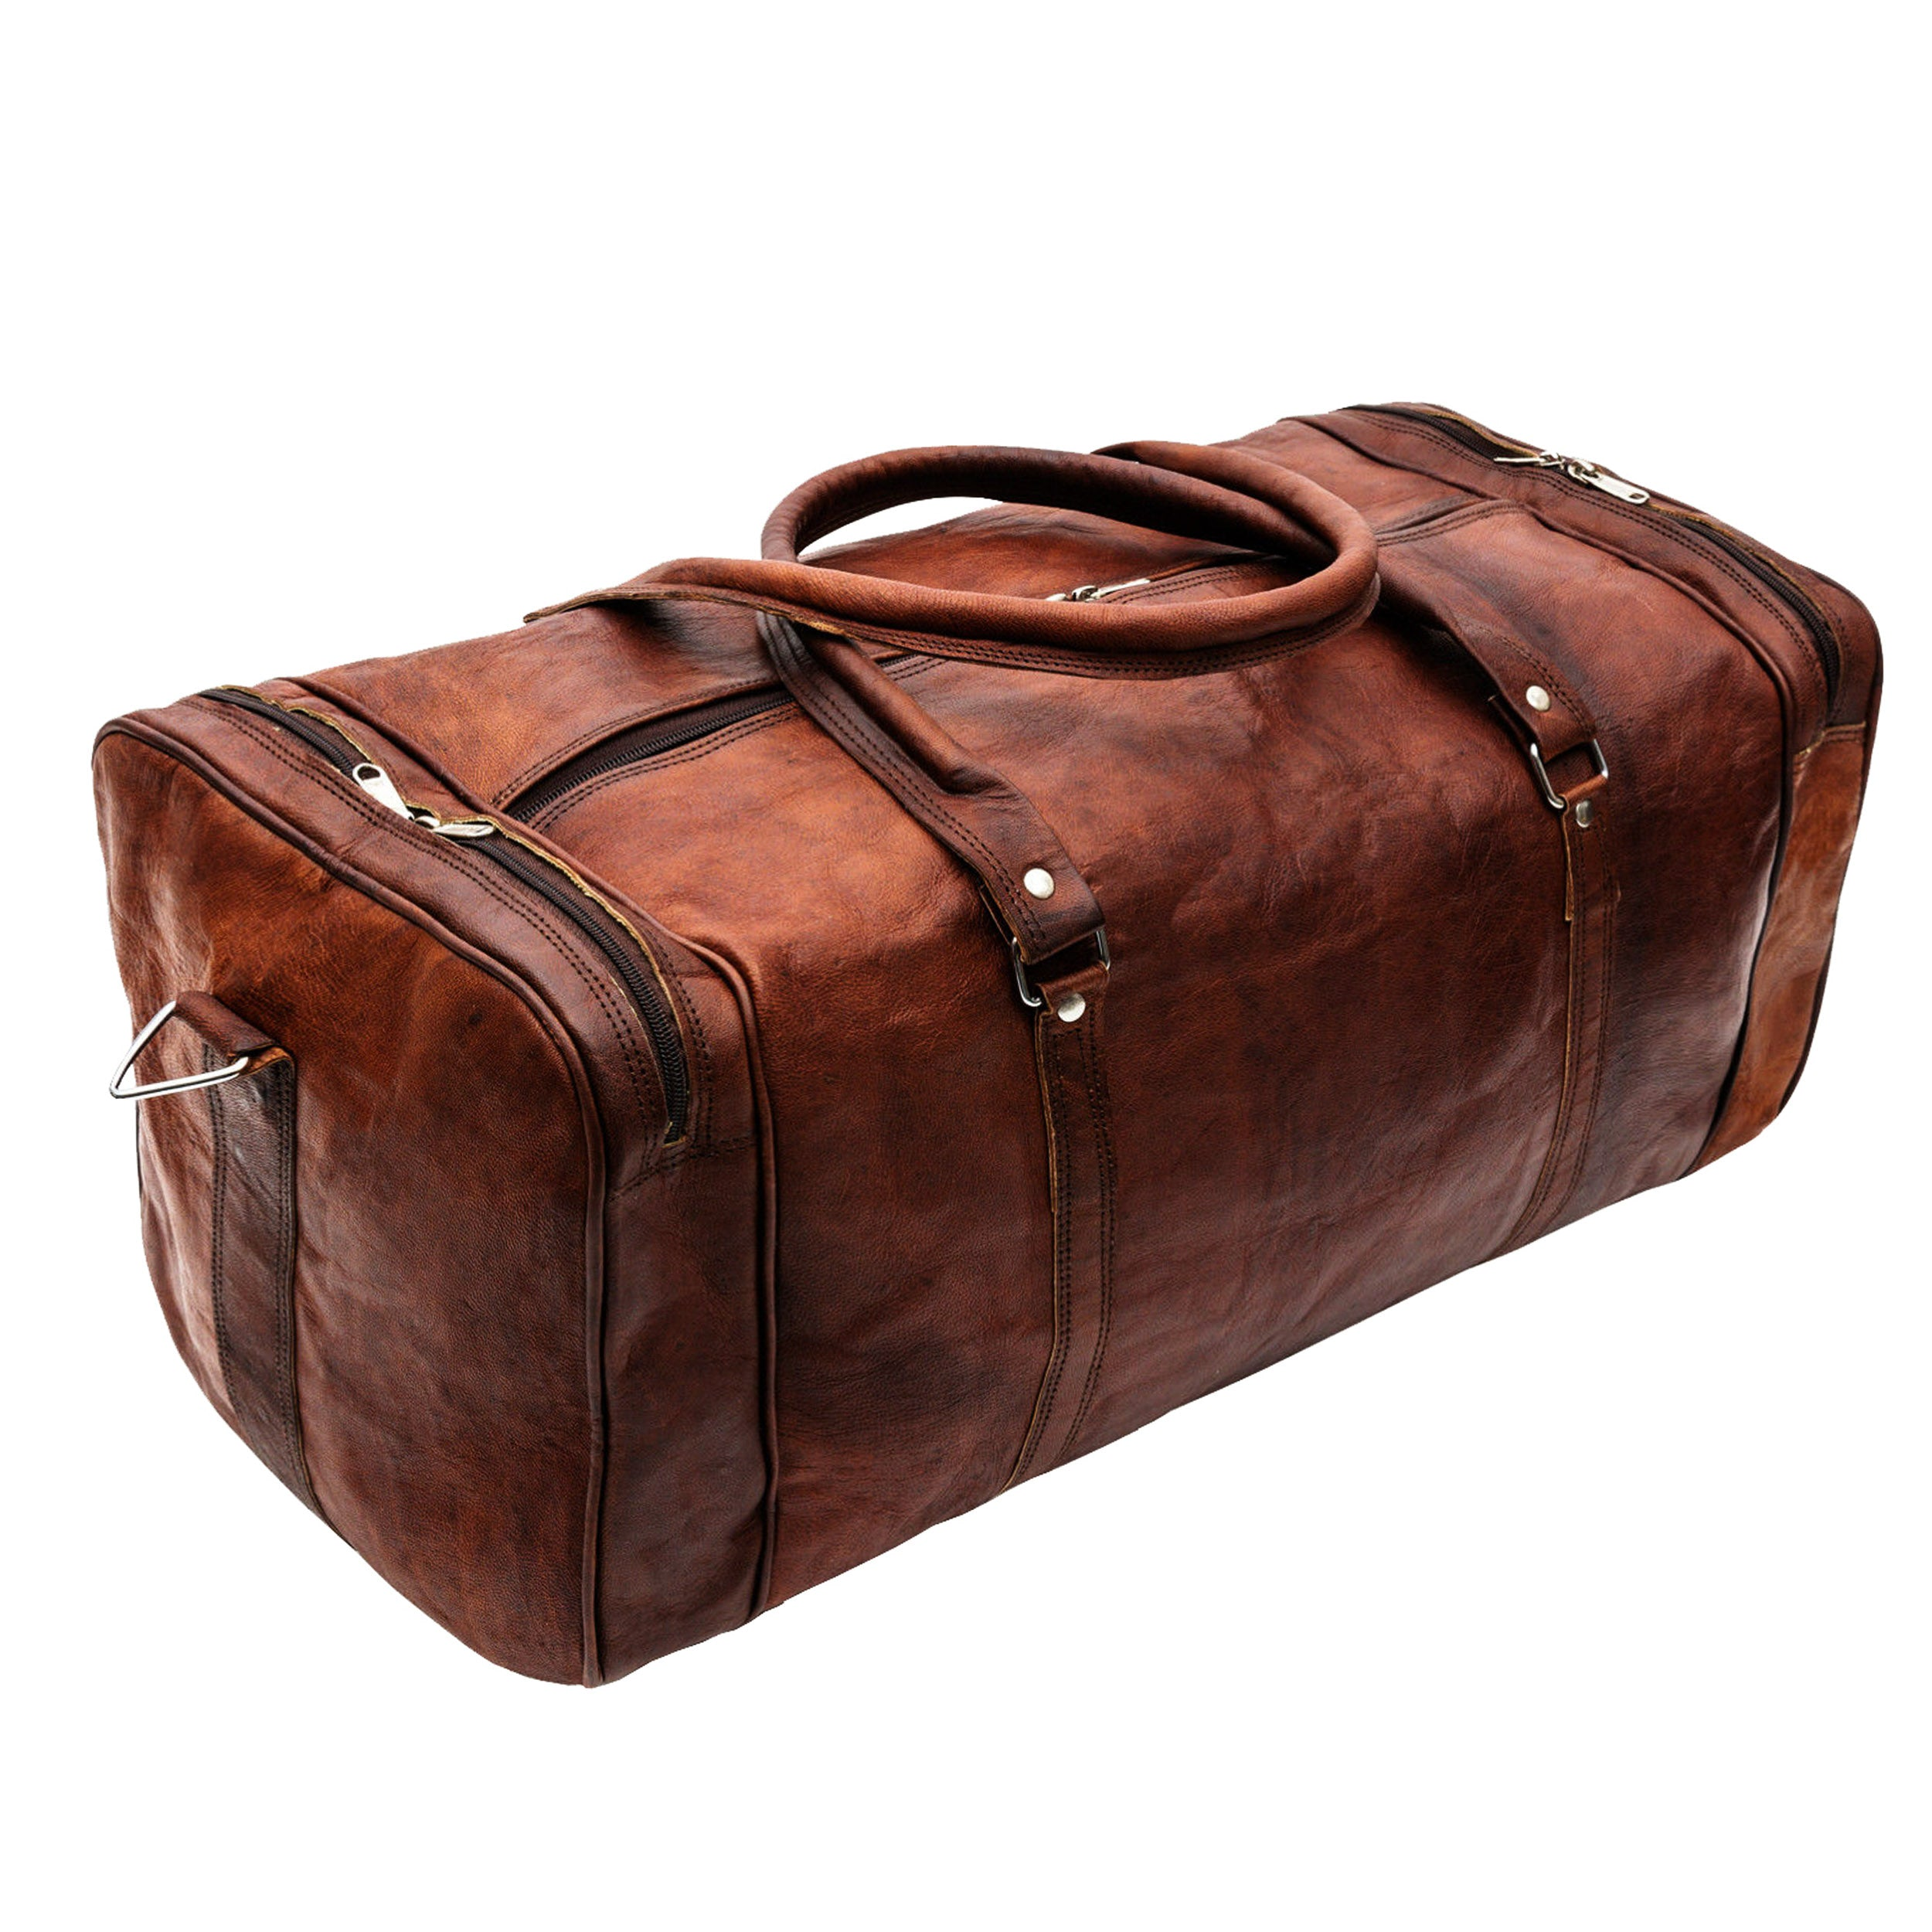 Large leather Duffle Overnight Weekender bag with Top Handle